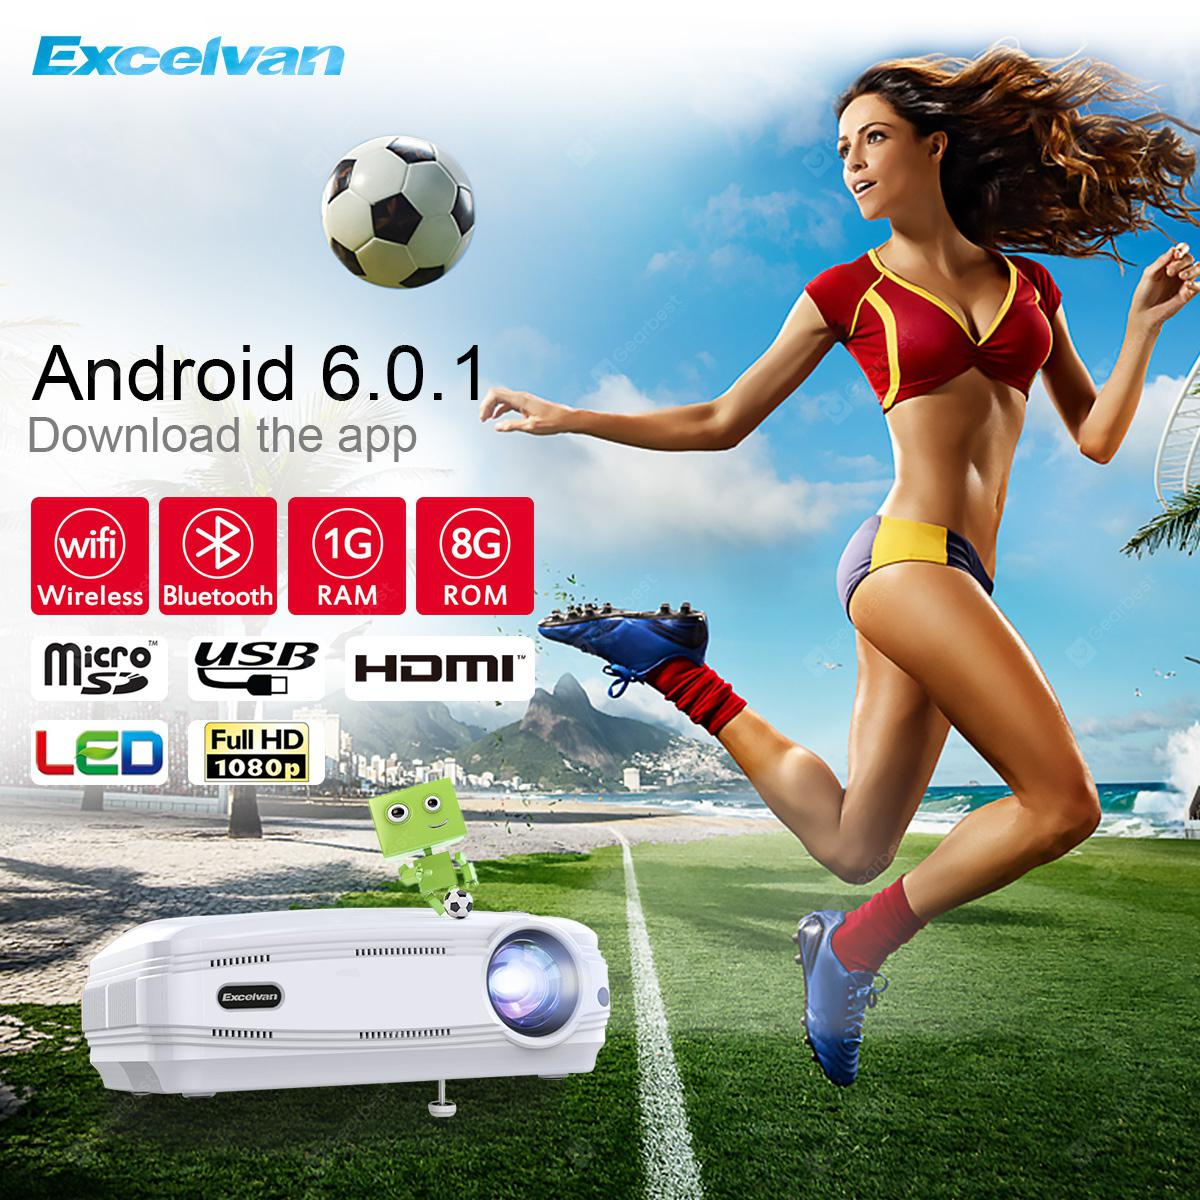 Excelvan BL - 59 HD Multimedia Projector - WHITE EU